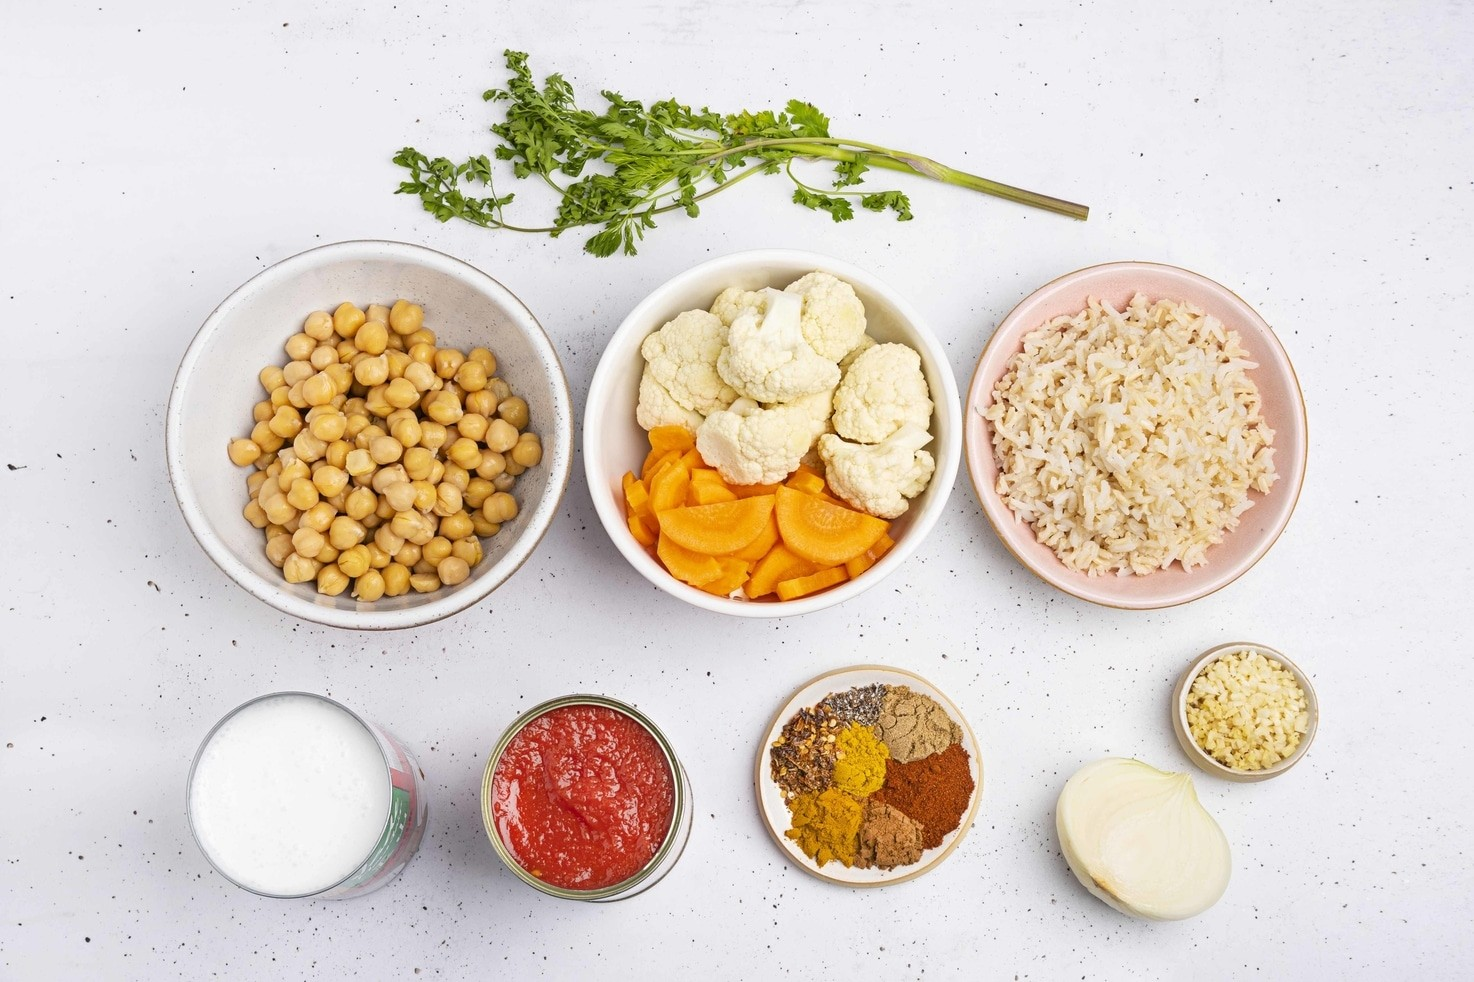 The ingredients for the vegan tikka masala are laid out in bowls, including chickpeas, cauliflower and carrots, brown rice, coconut milk, tomatoes, a selection of spices, half an onion, minced garlic and a sprig of parsley   Hurry The Food Up